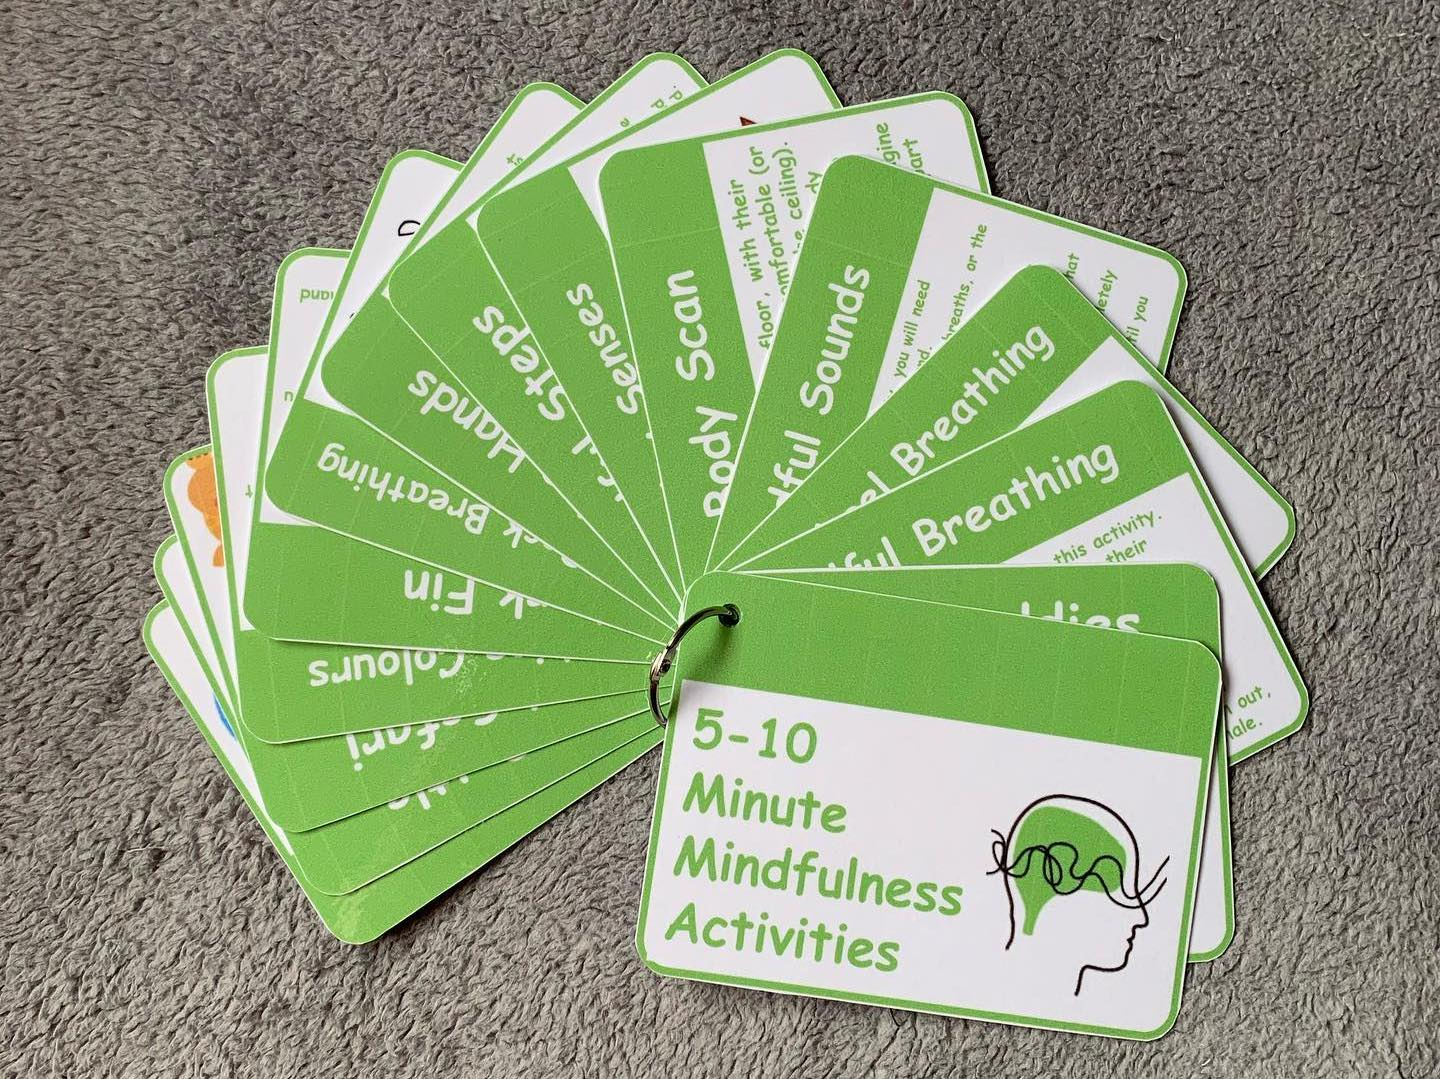 5-10 Minute Mindfulness Activity Cards